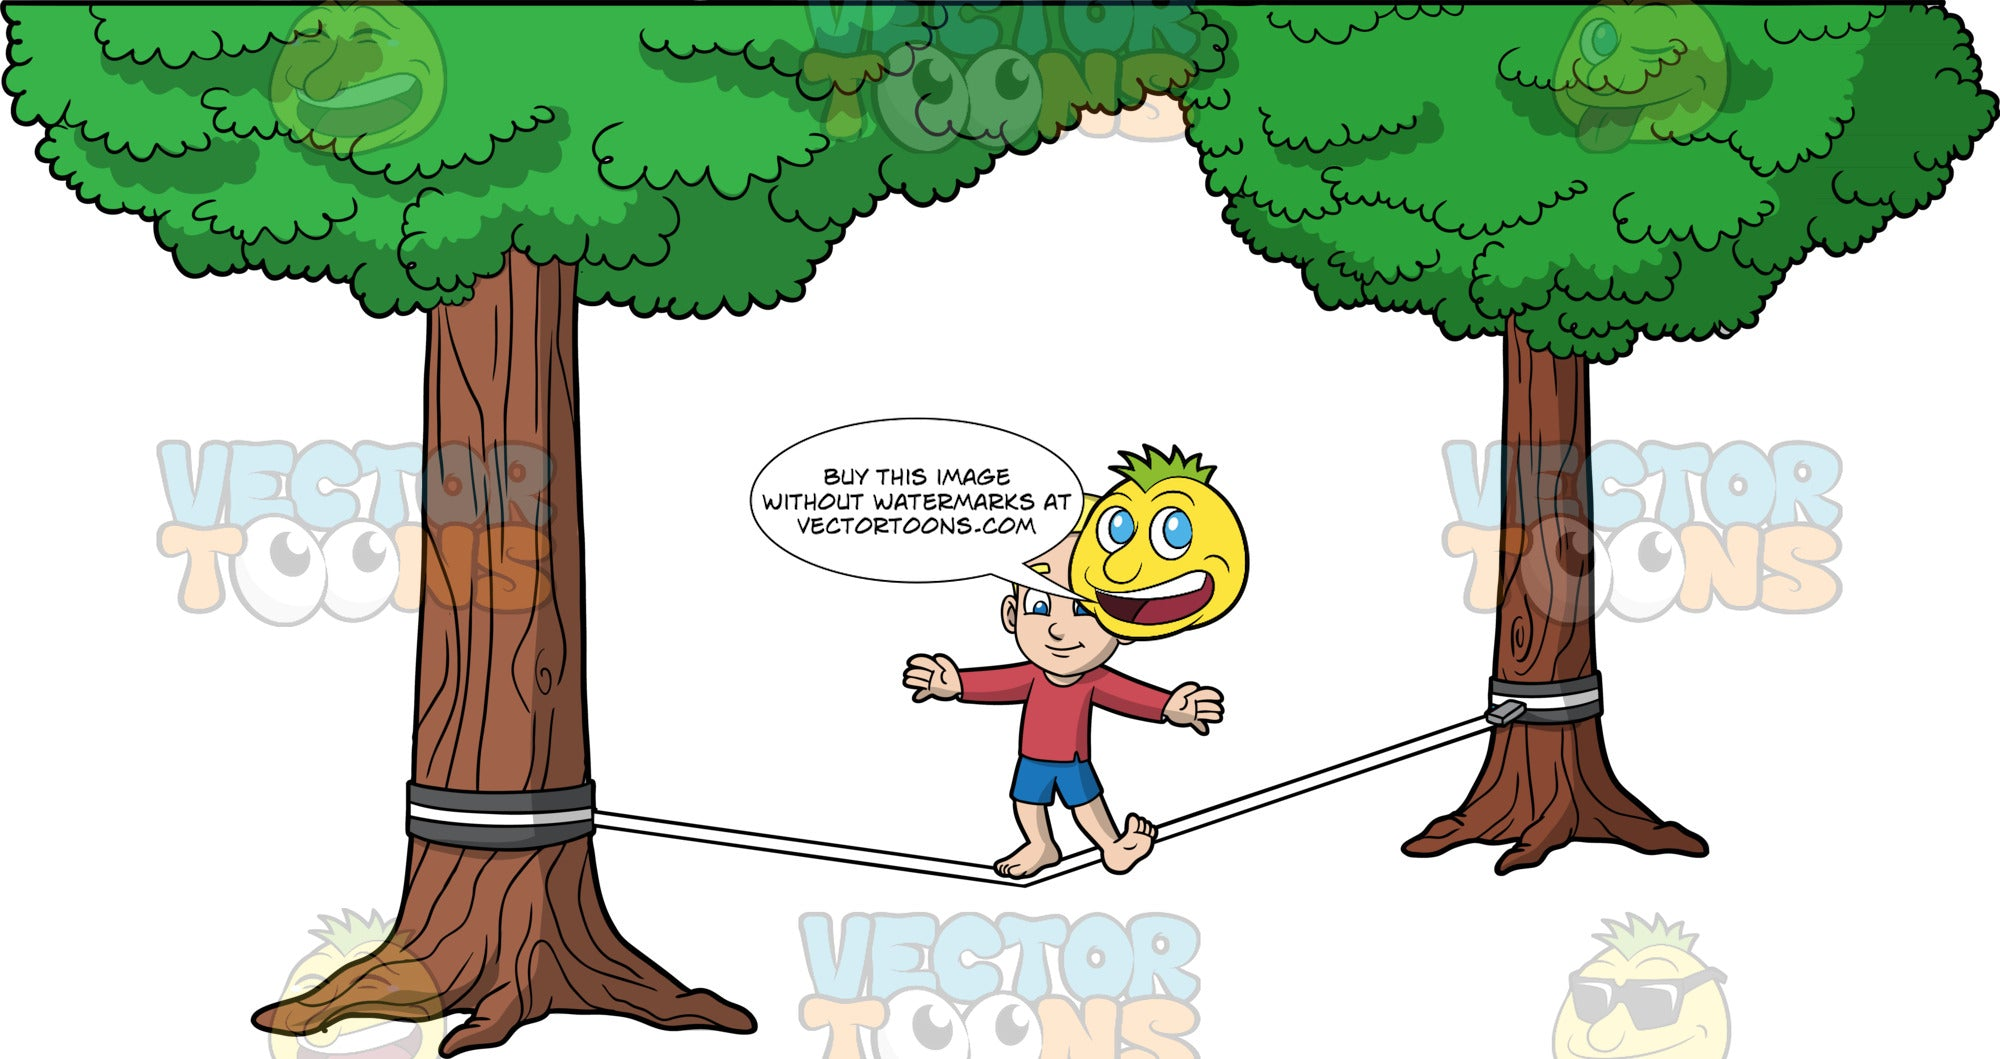 Young Bob Trying To Balance On A Slackline. A young blonde boy wearing blue shorts and a long sleeve red shirt, balancing on one foot as he tries to make his way across a slackline tied between two trees